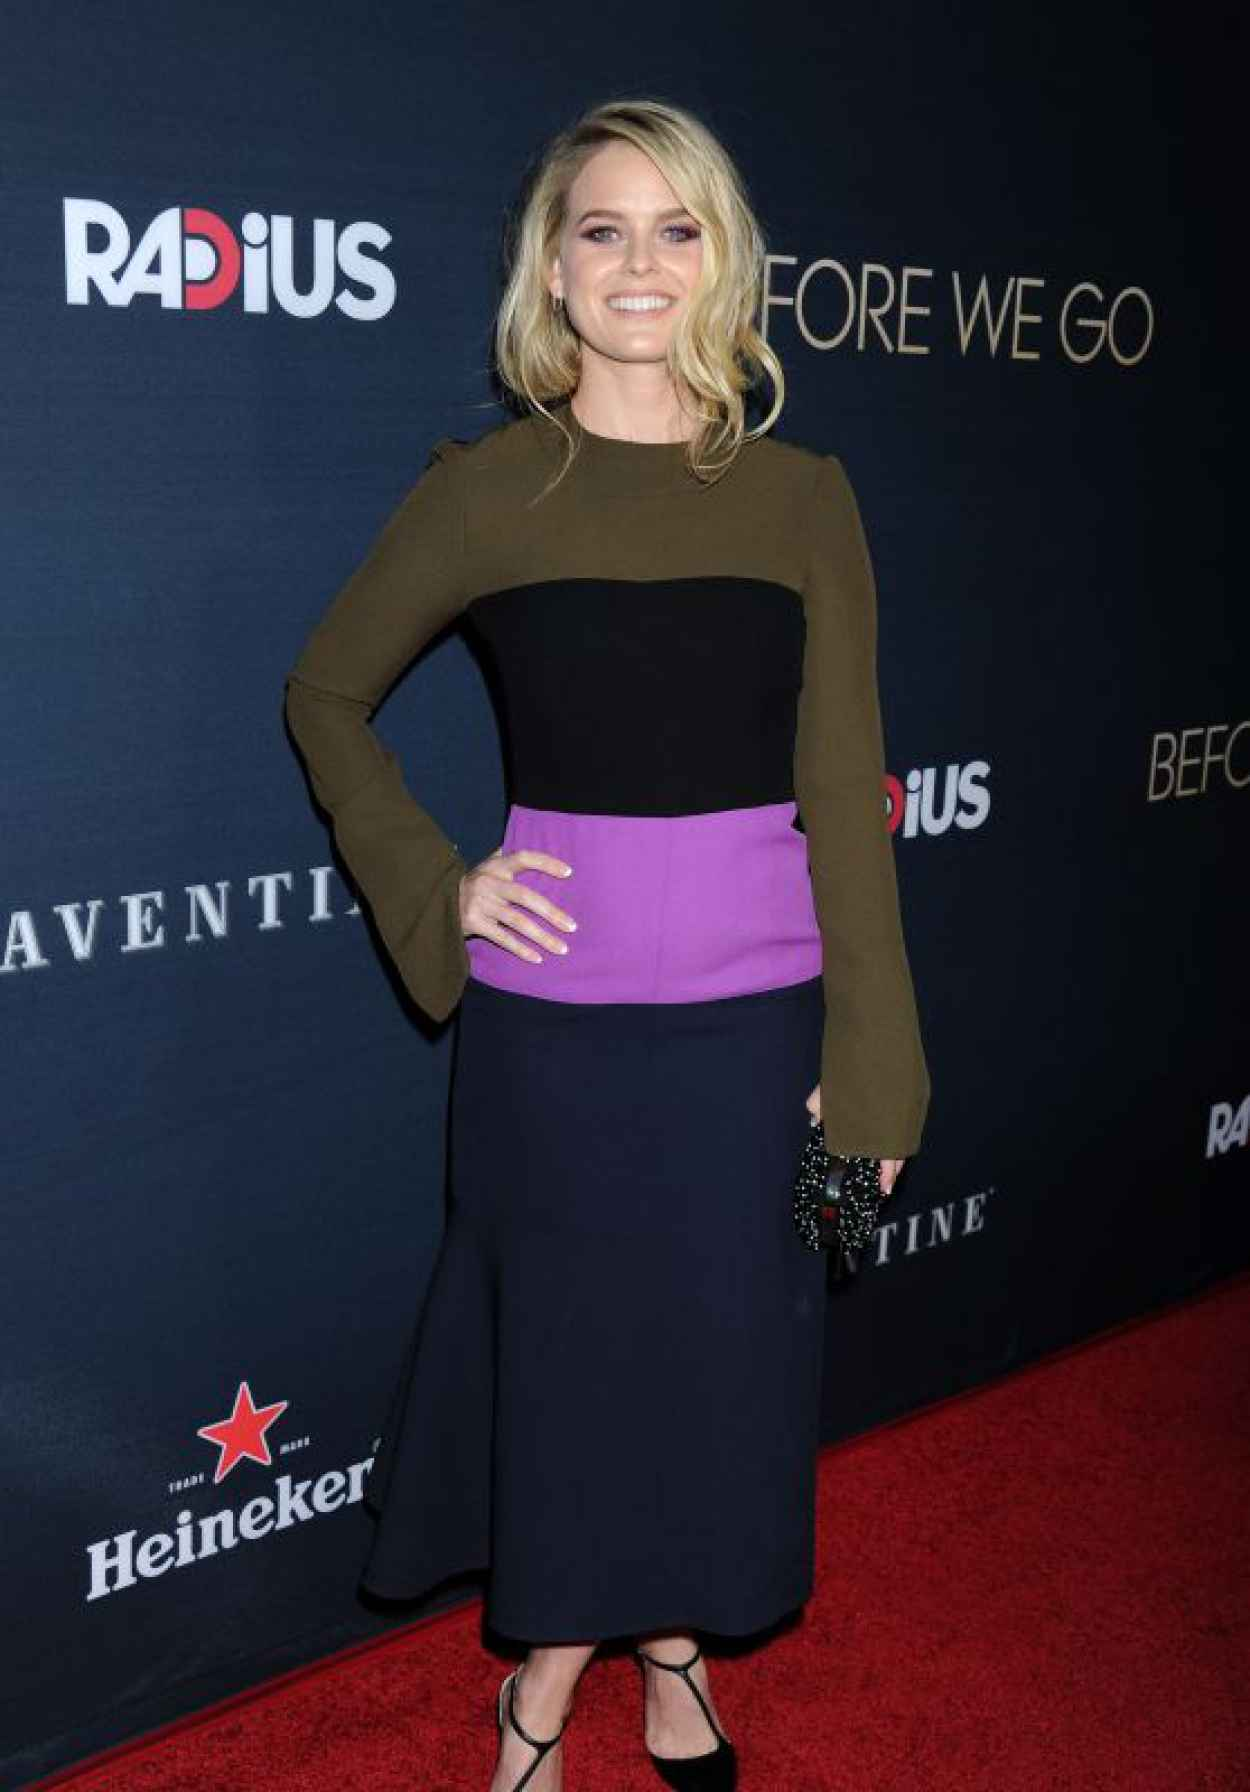 Alice Eve - Before We Go Premiere in Hollywood-1